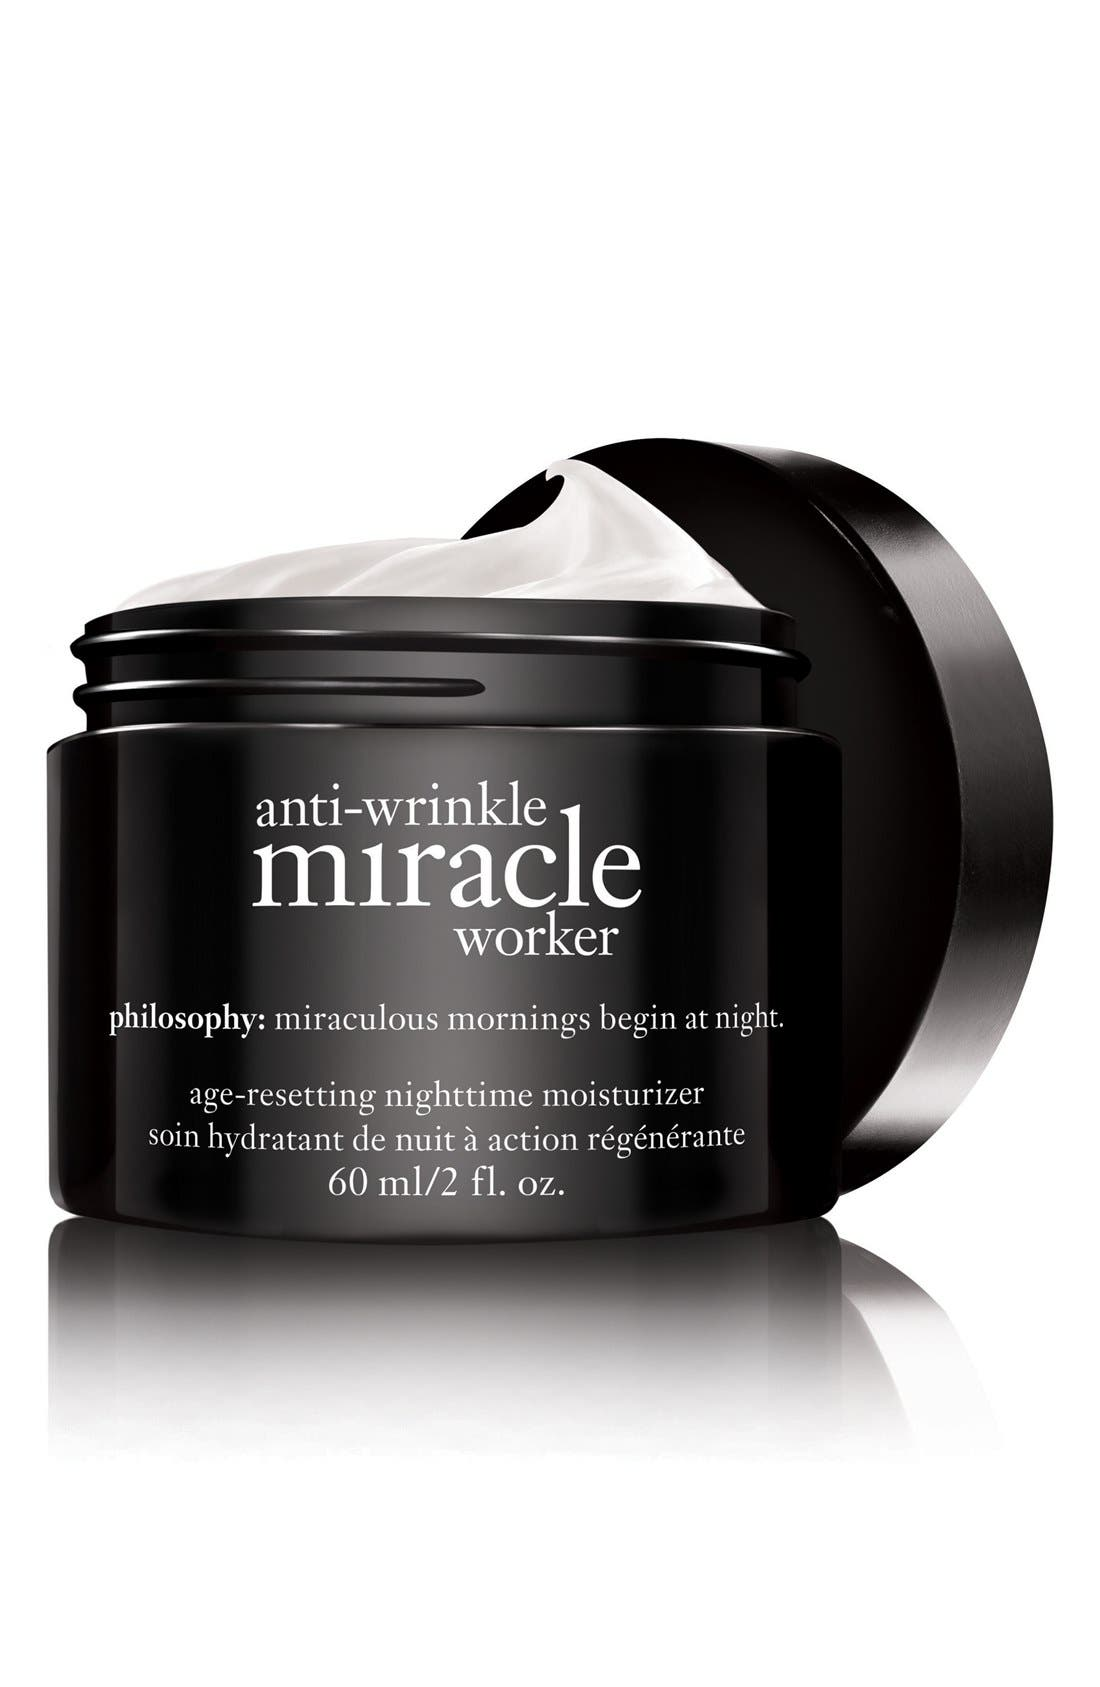 philosophy 'anti-wrinkle miracle worker' age-resetting nighttime moisturizer